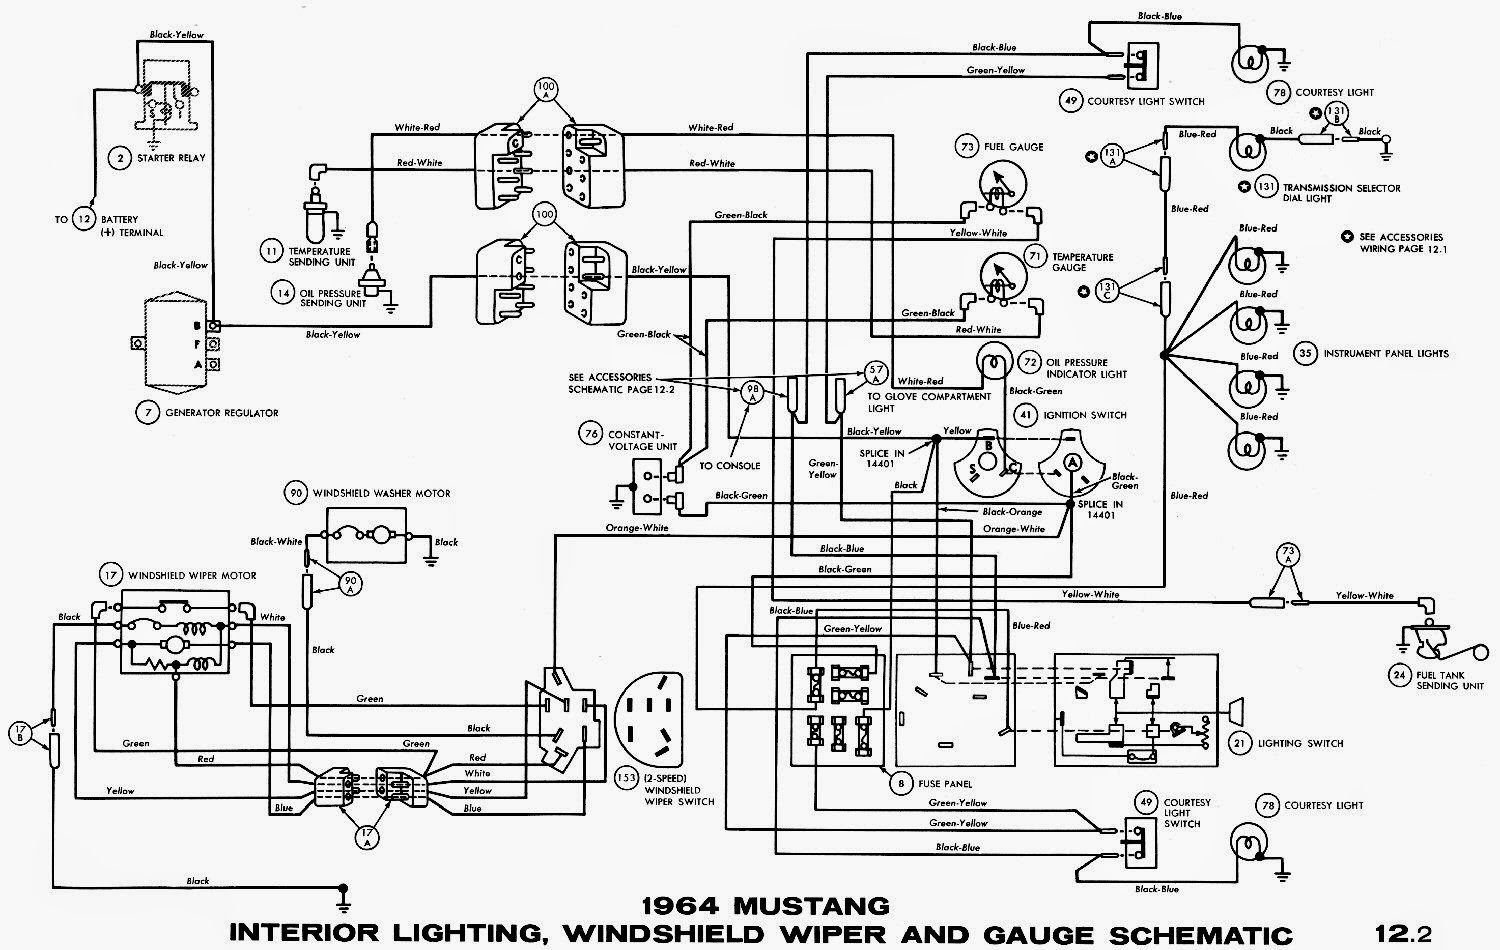 1964%2BMustang%2BWiring%2BDiagrams 1964 mustang wiring diagrams schematic wiring diagrams 1989 mustang wiring diagram at bayanpartner.co